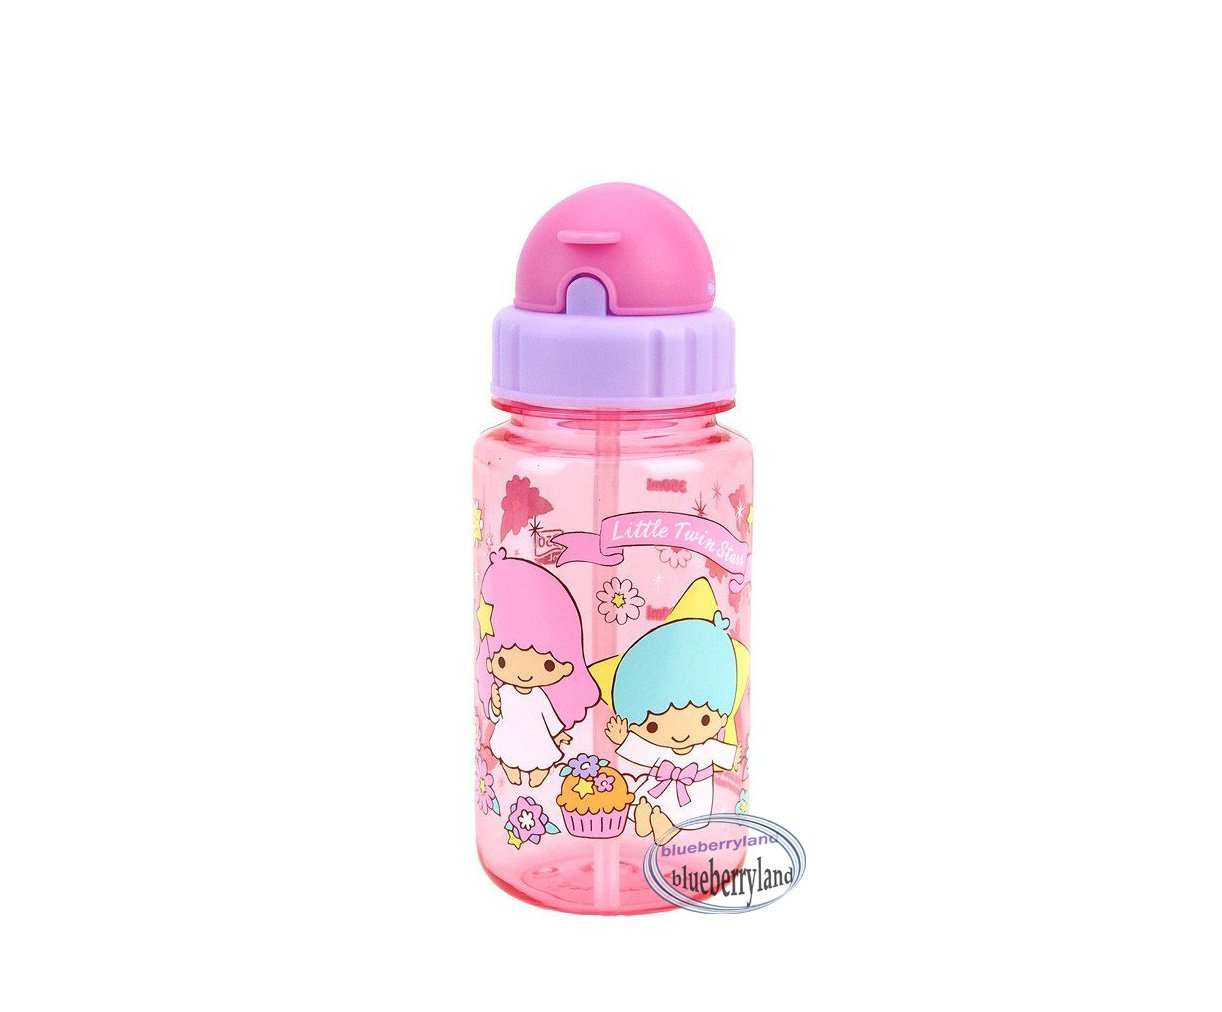 Sanrio Little Twin Stars BPA free Water Bottle 350ml with straw drink Container Q16